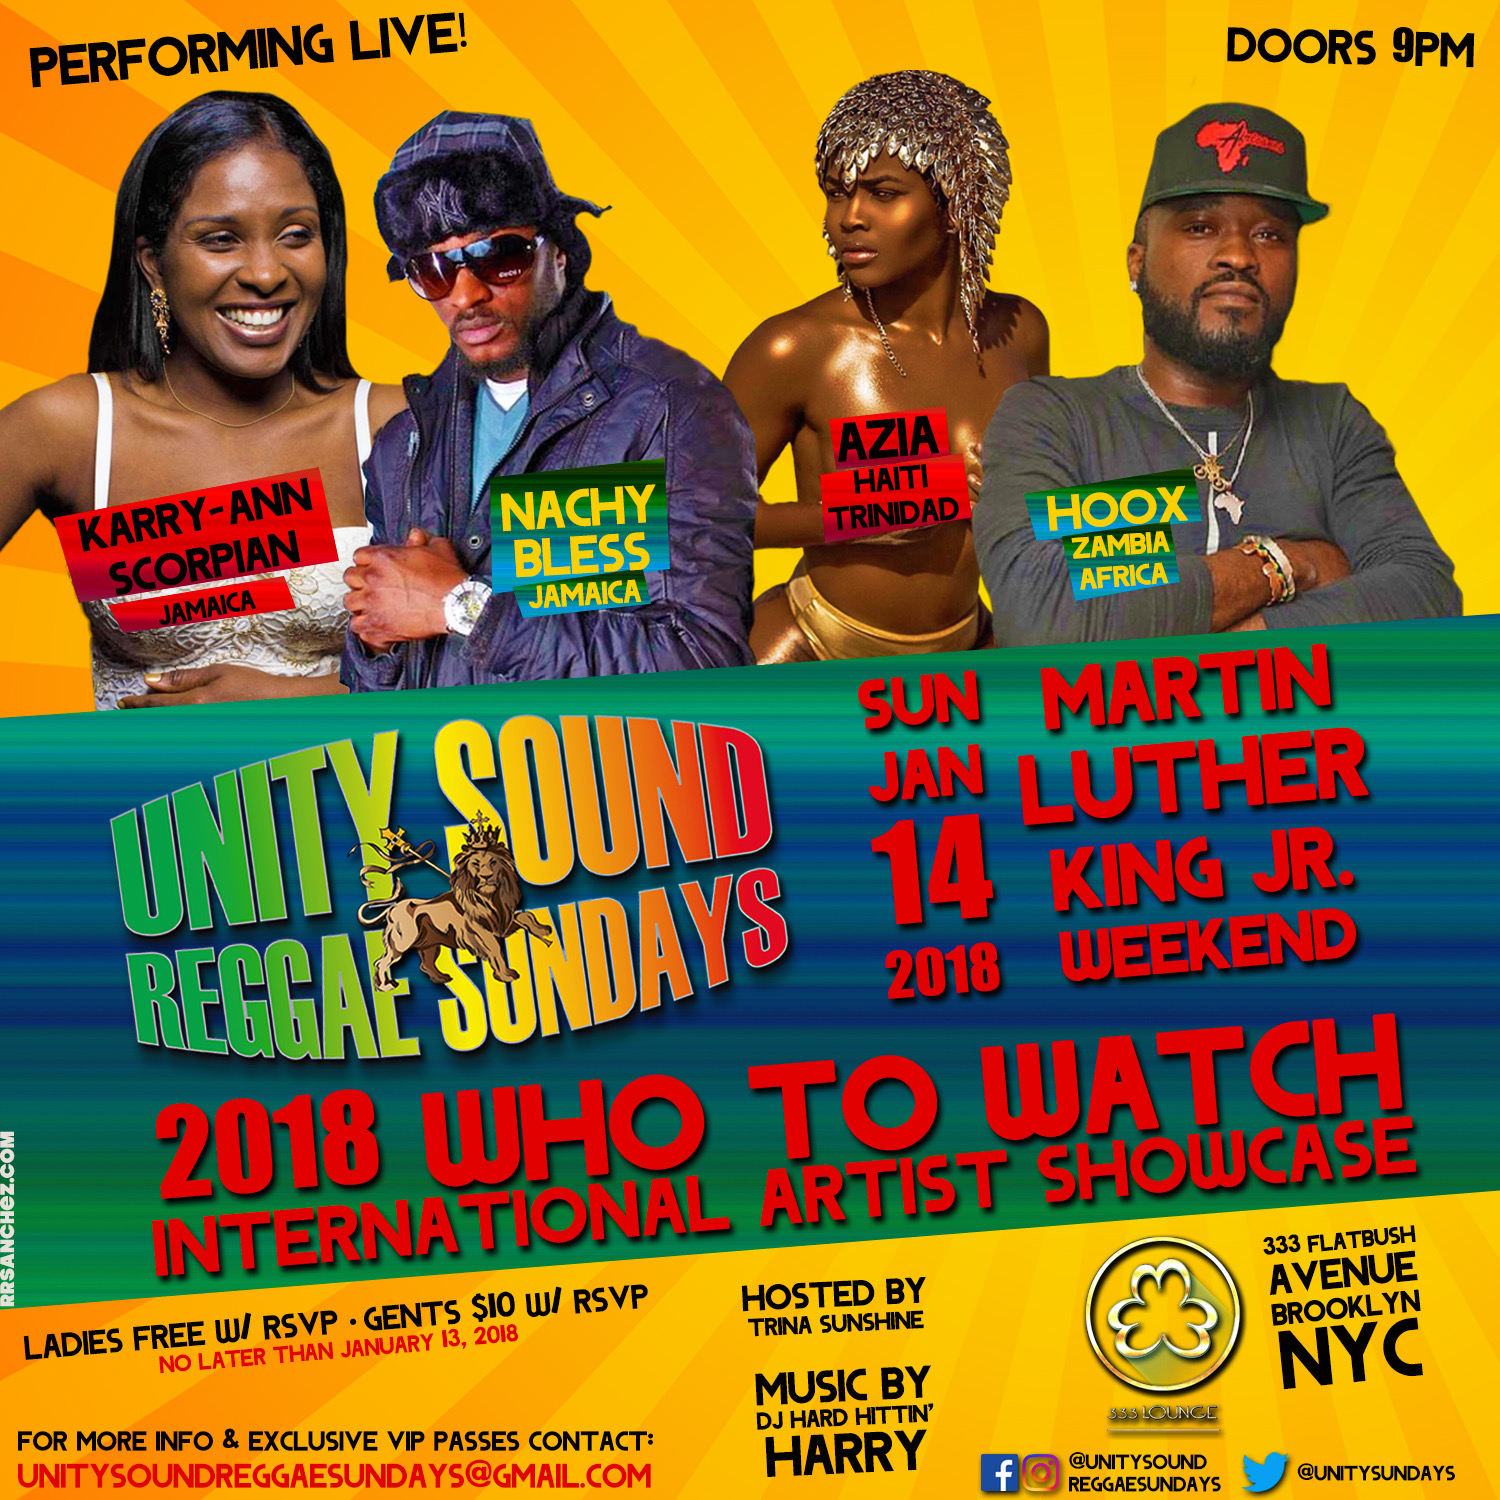 Unity Sound Reggae Sundays 2018